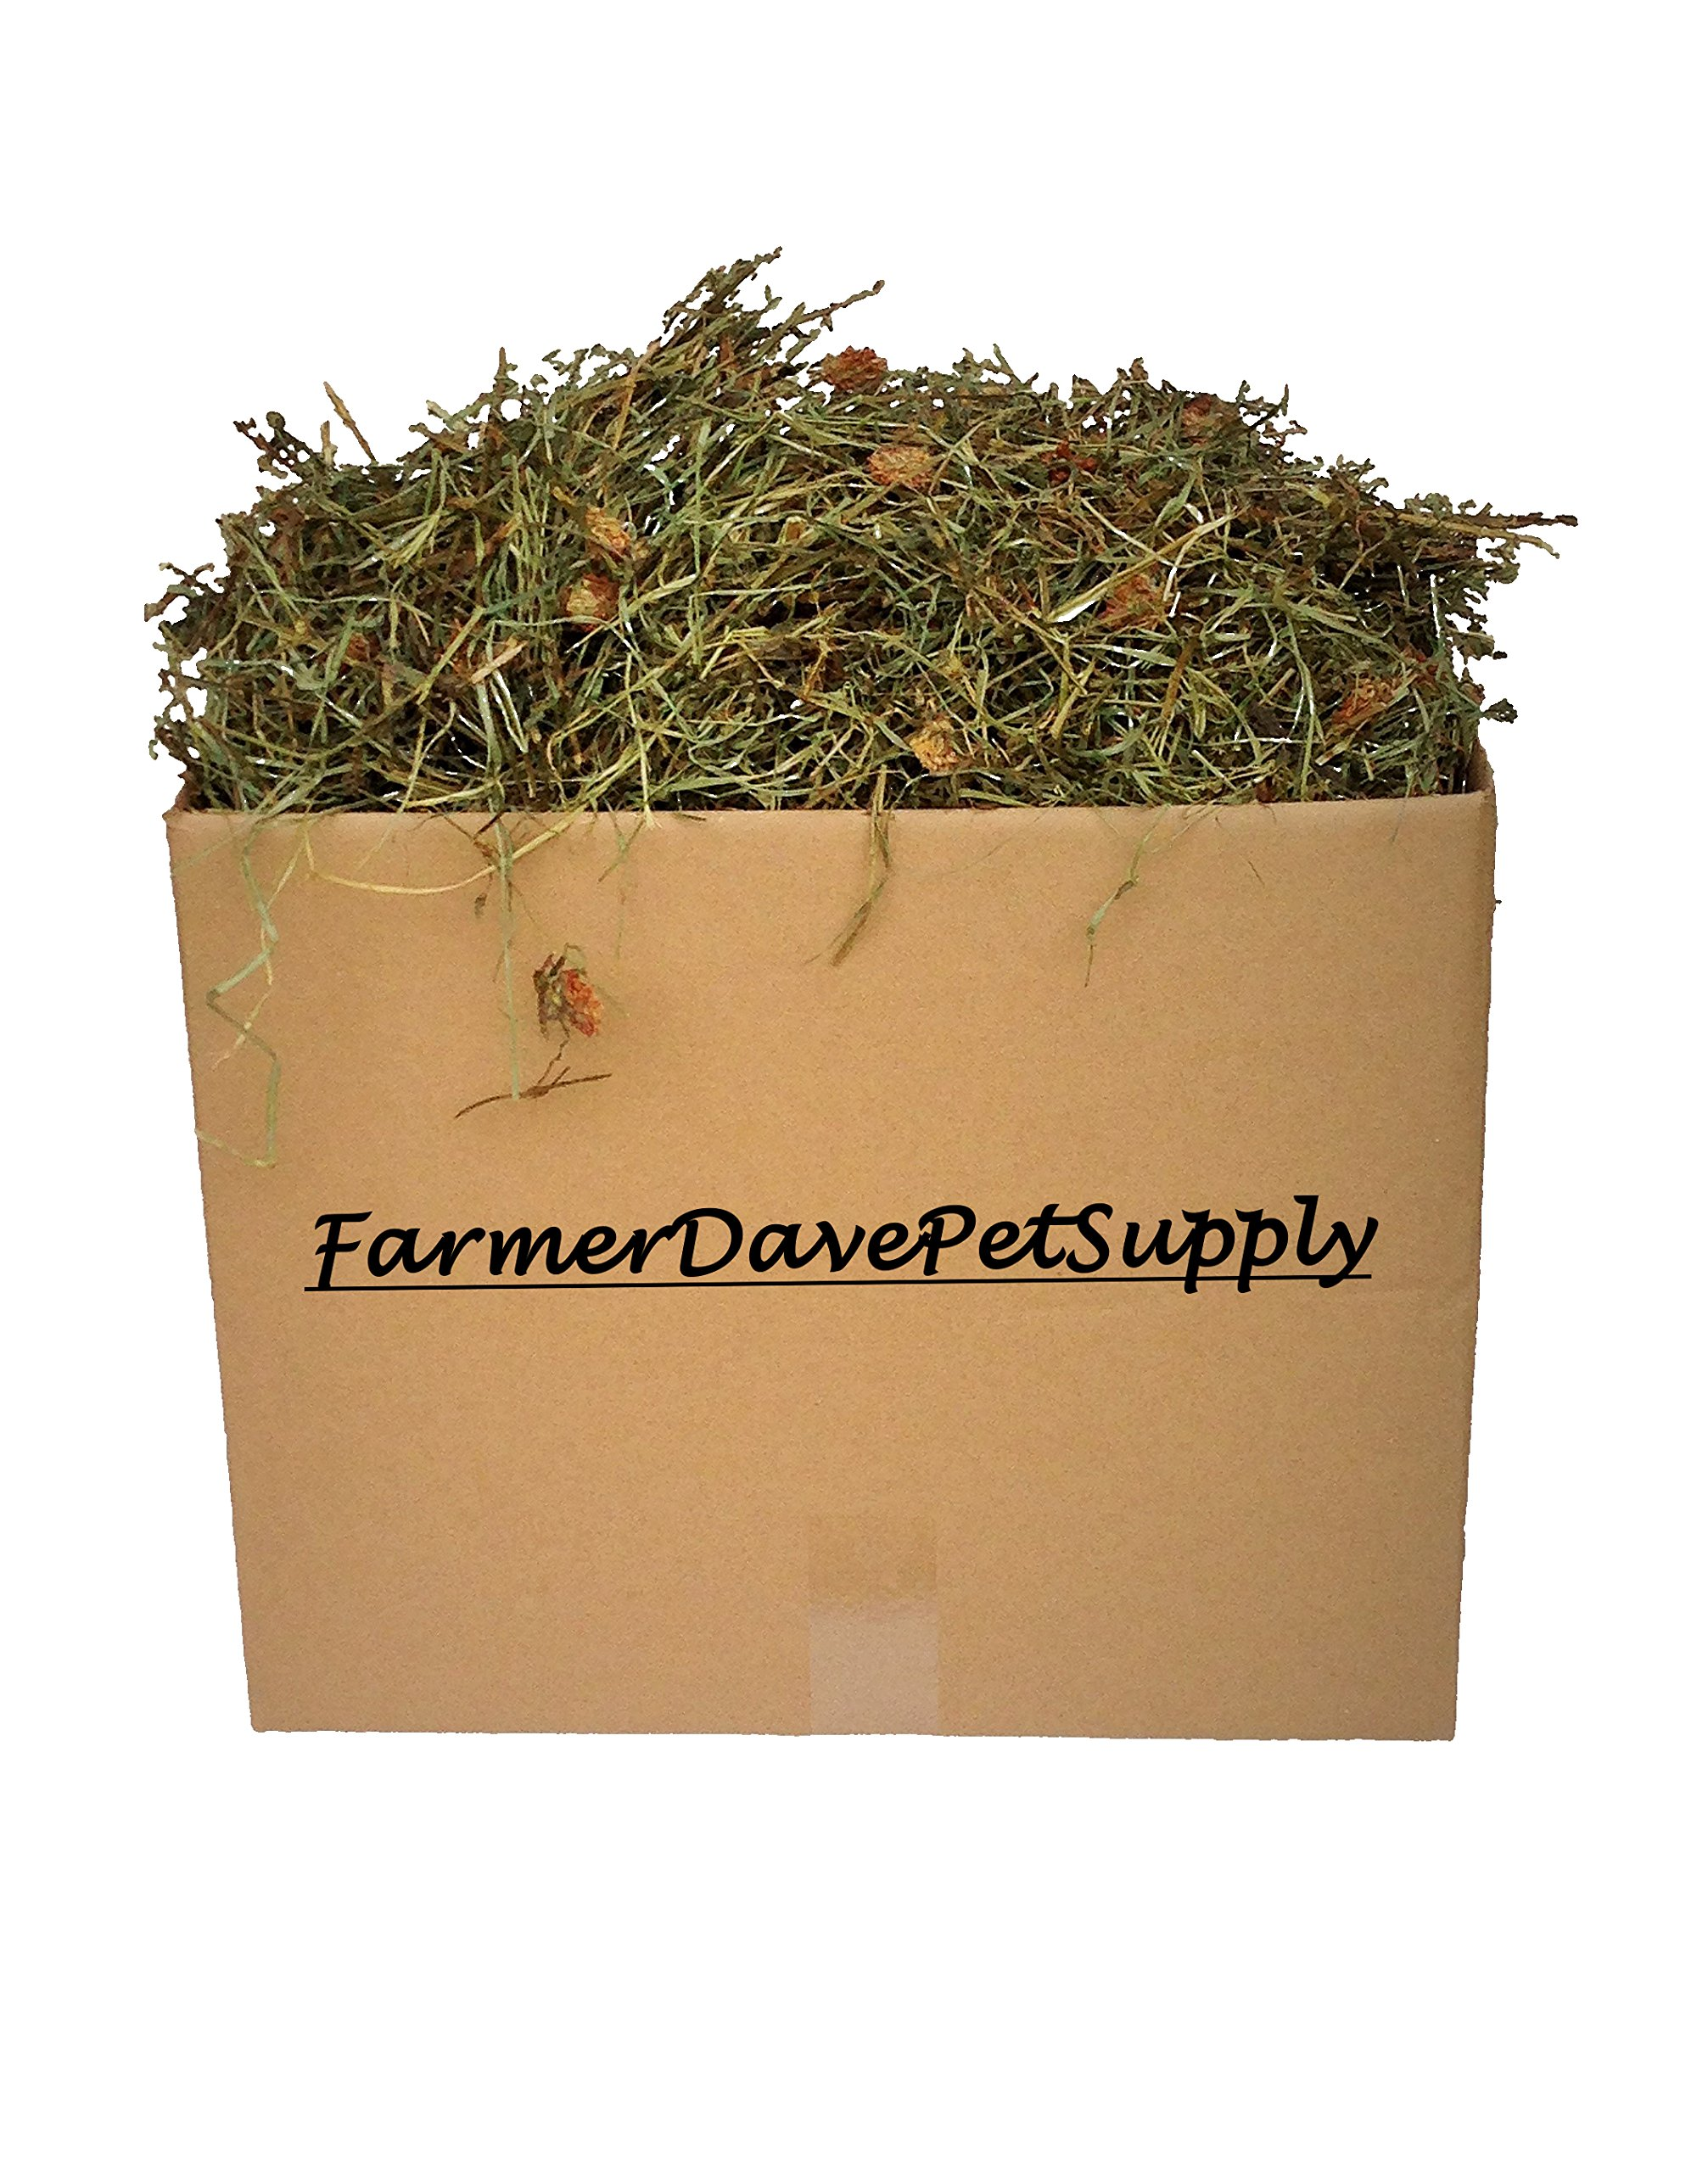 FarmerDavePetSupply 15 Lb. Premium 2nd Cut Timothy Hay With Clover, Bunny, and Small Animal Pet HAY-IN-A-BOX